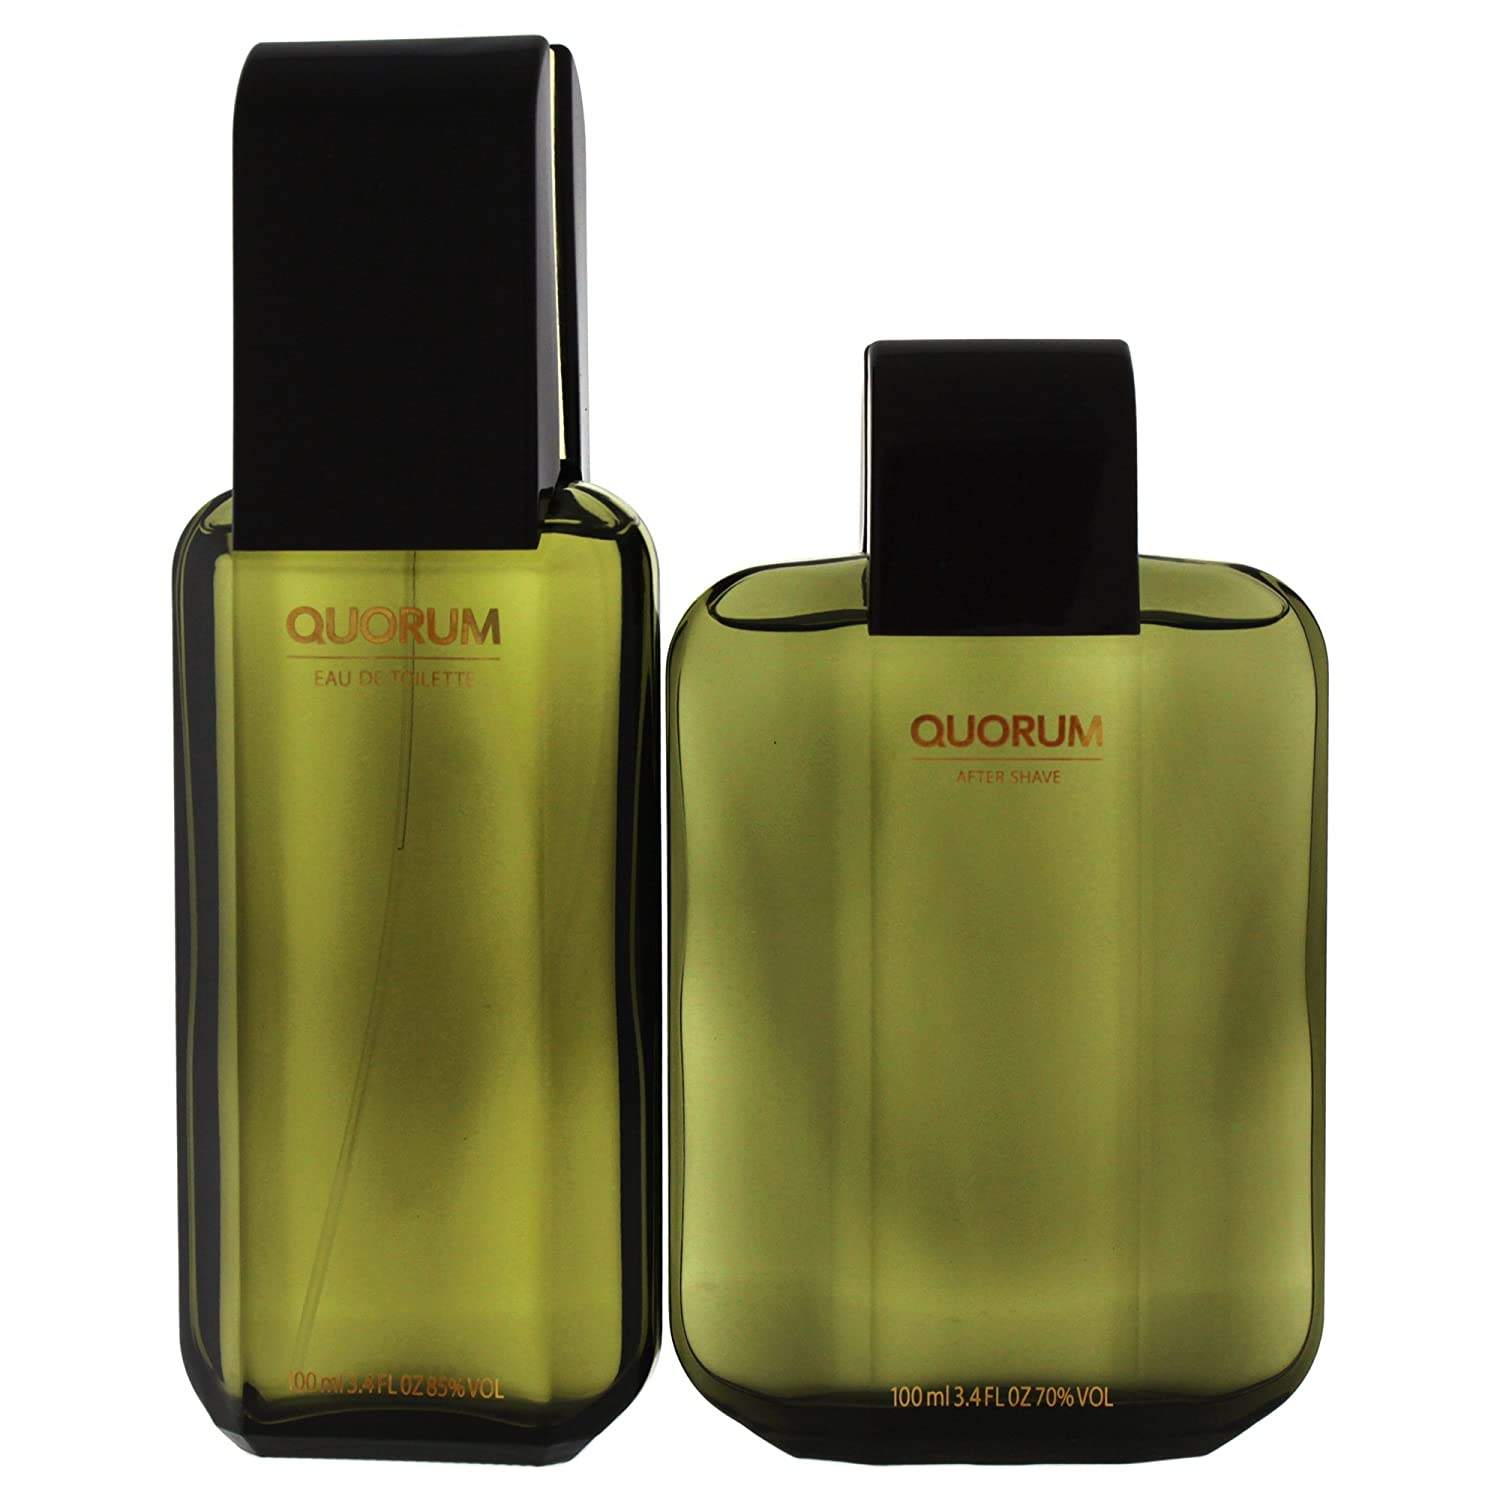 Quorum - Estuche de regalo Eau de Toilette, Multicolor (ANTQUOM92100001): Amazon.es